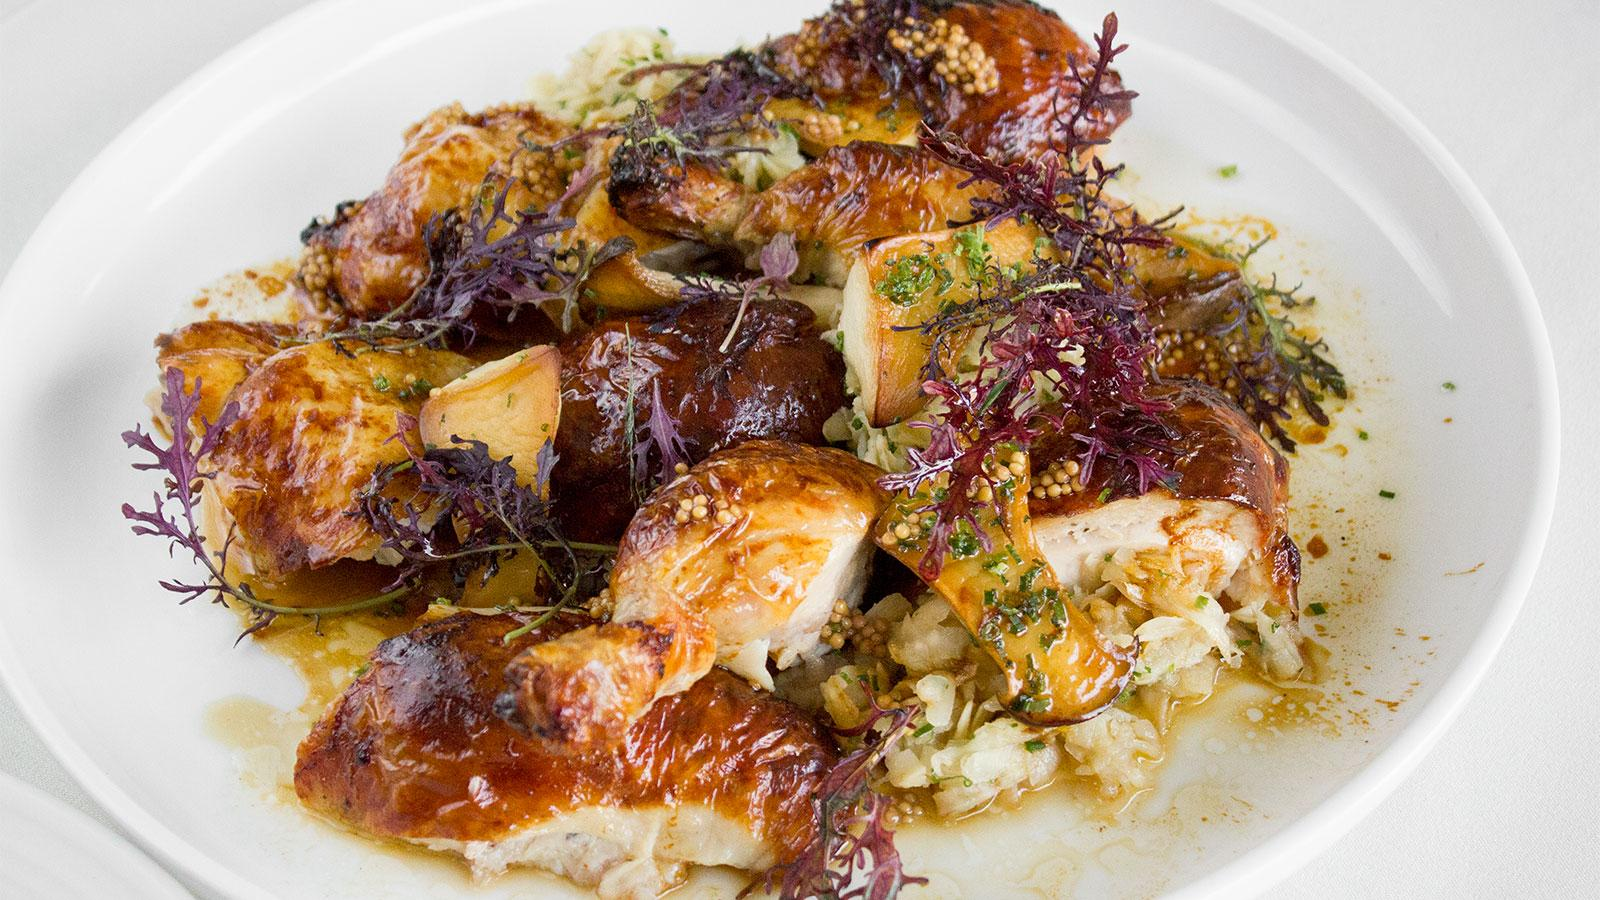 Roast Chicken with Celery Root, Mushrooms and Pickled Mustard Seeds